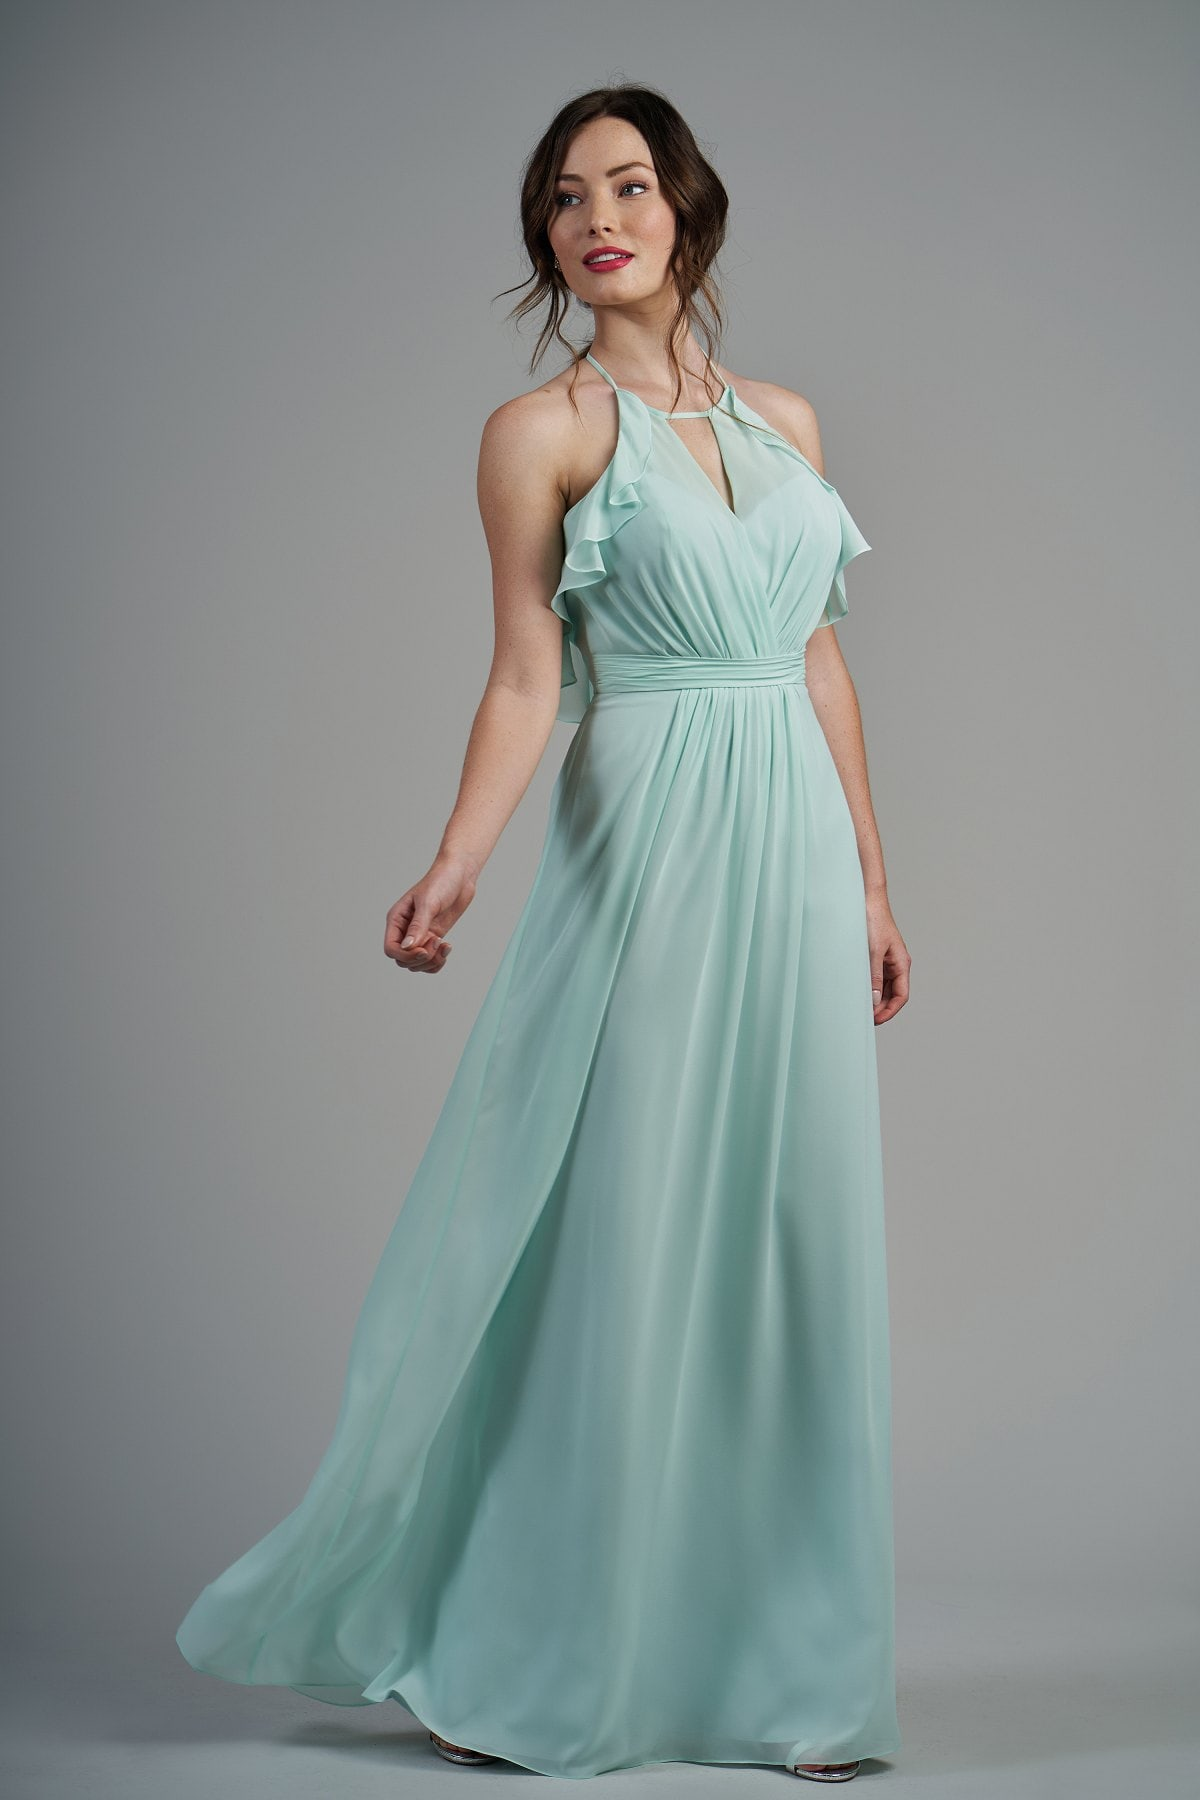 B2 bridesmaid dresses